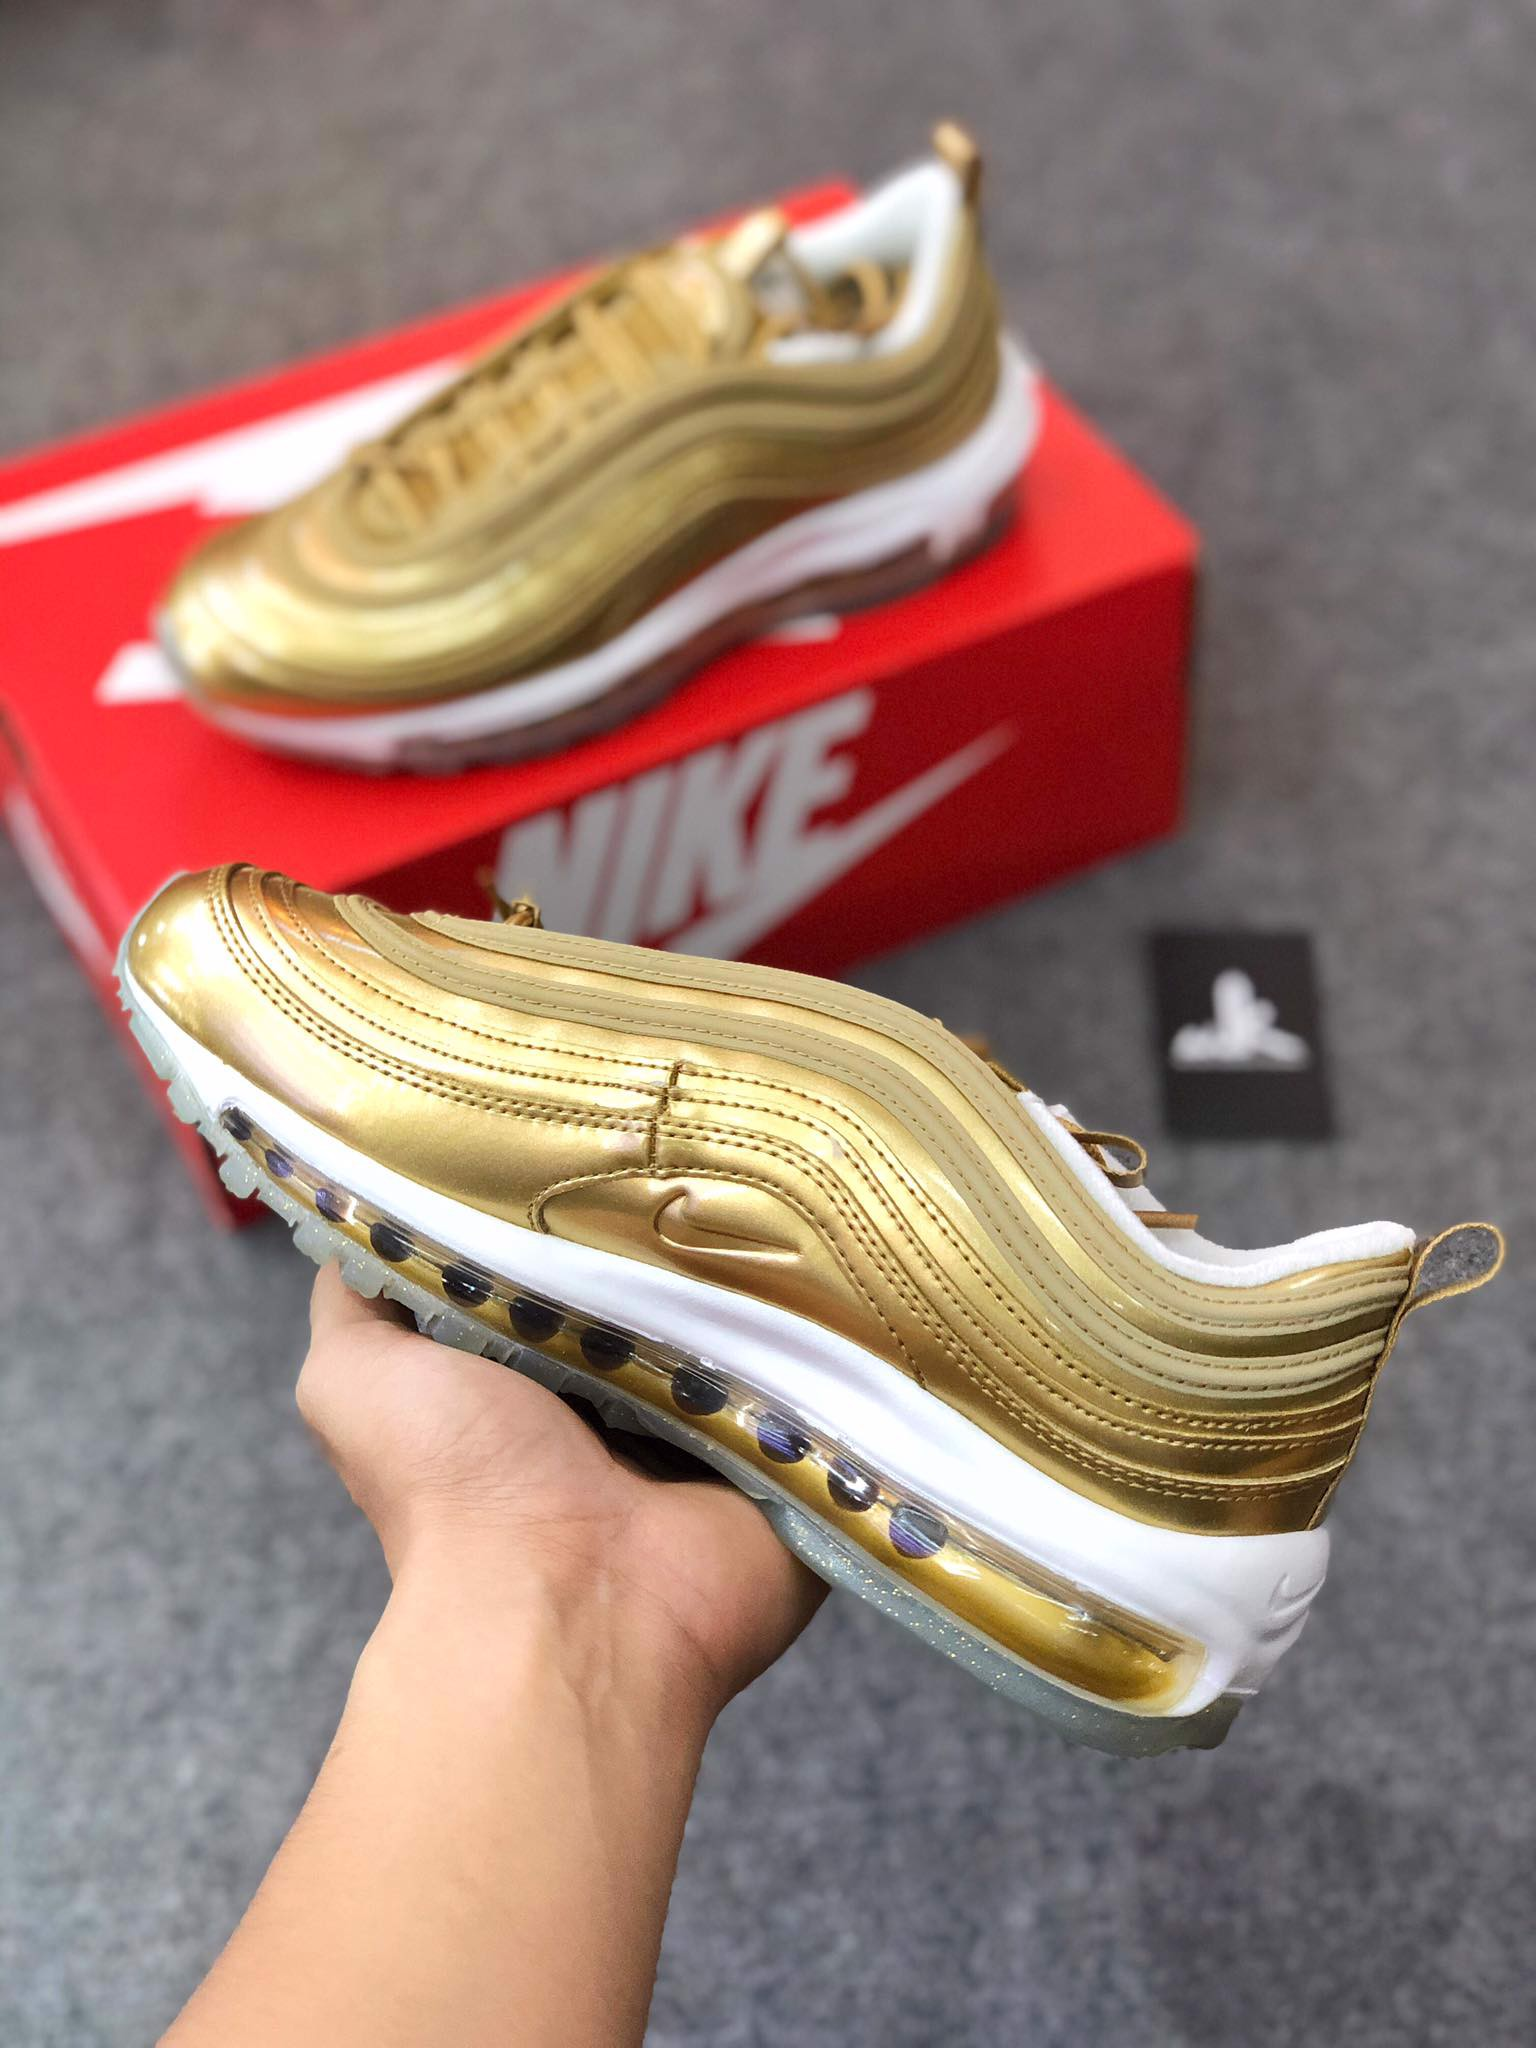 CJ0625-700 Air Max 97 Gold Medal (2020)